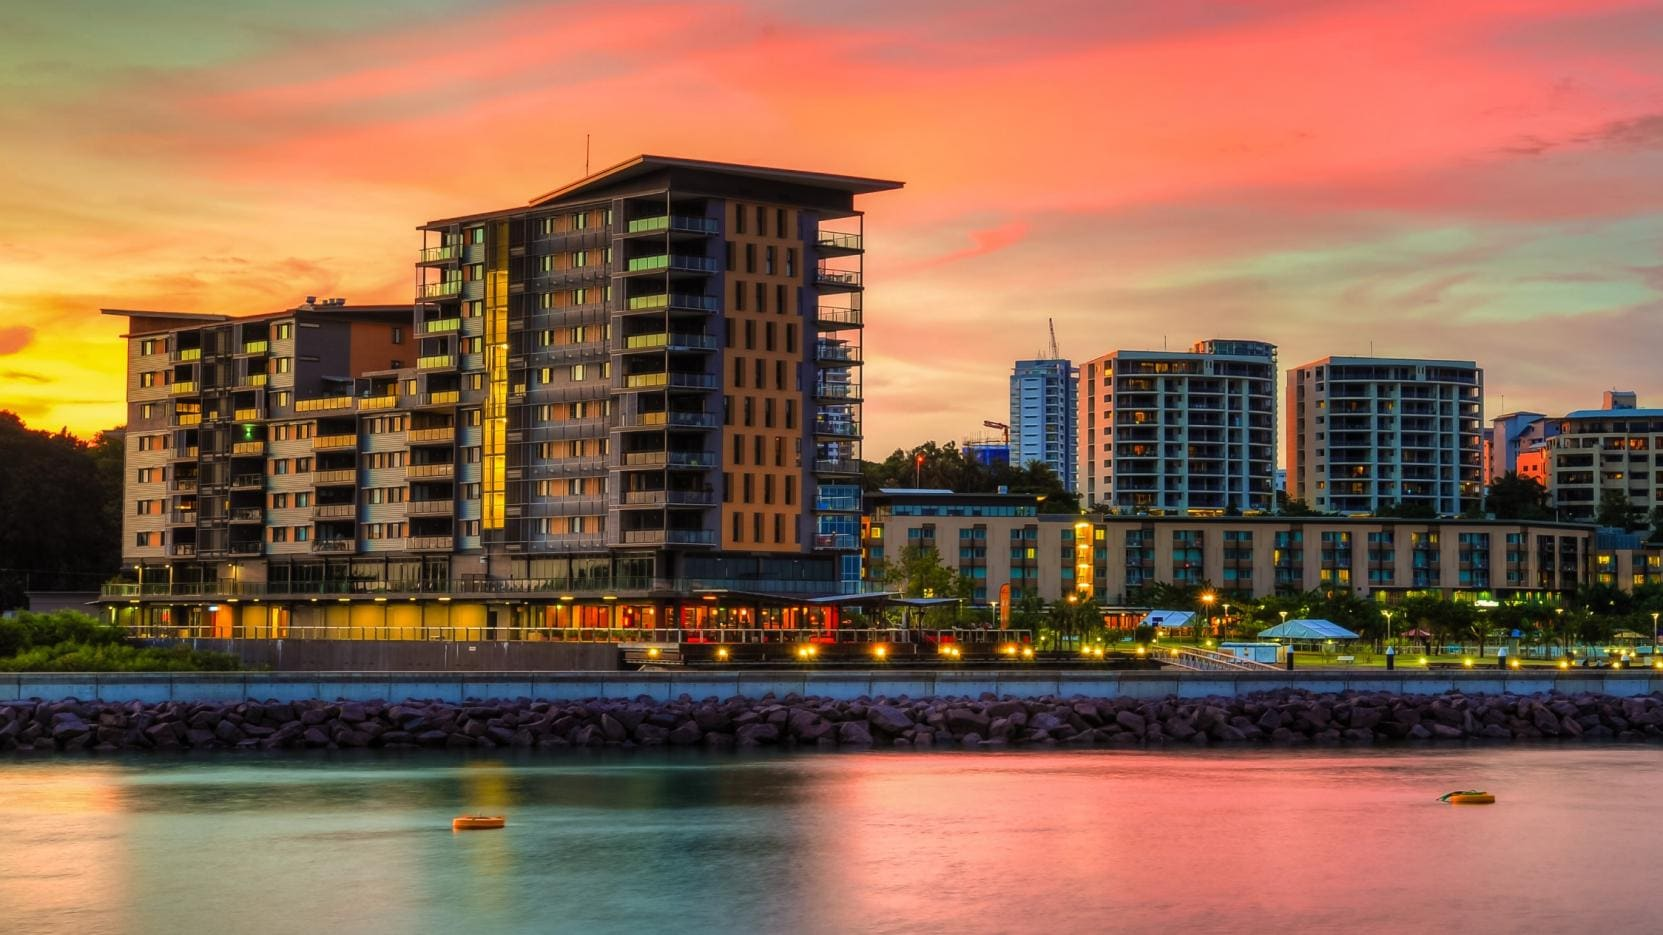 Darwin Waterfront Luxury Suites, Darwin, Northern Territory © William Cowan